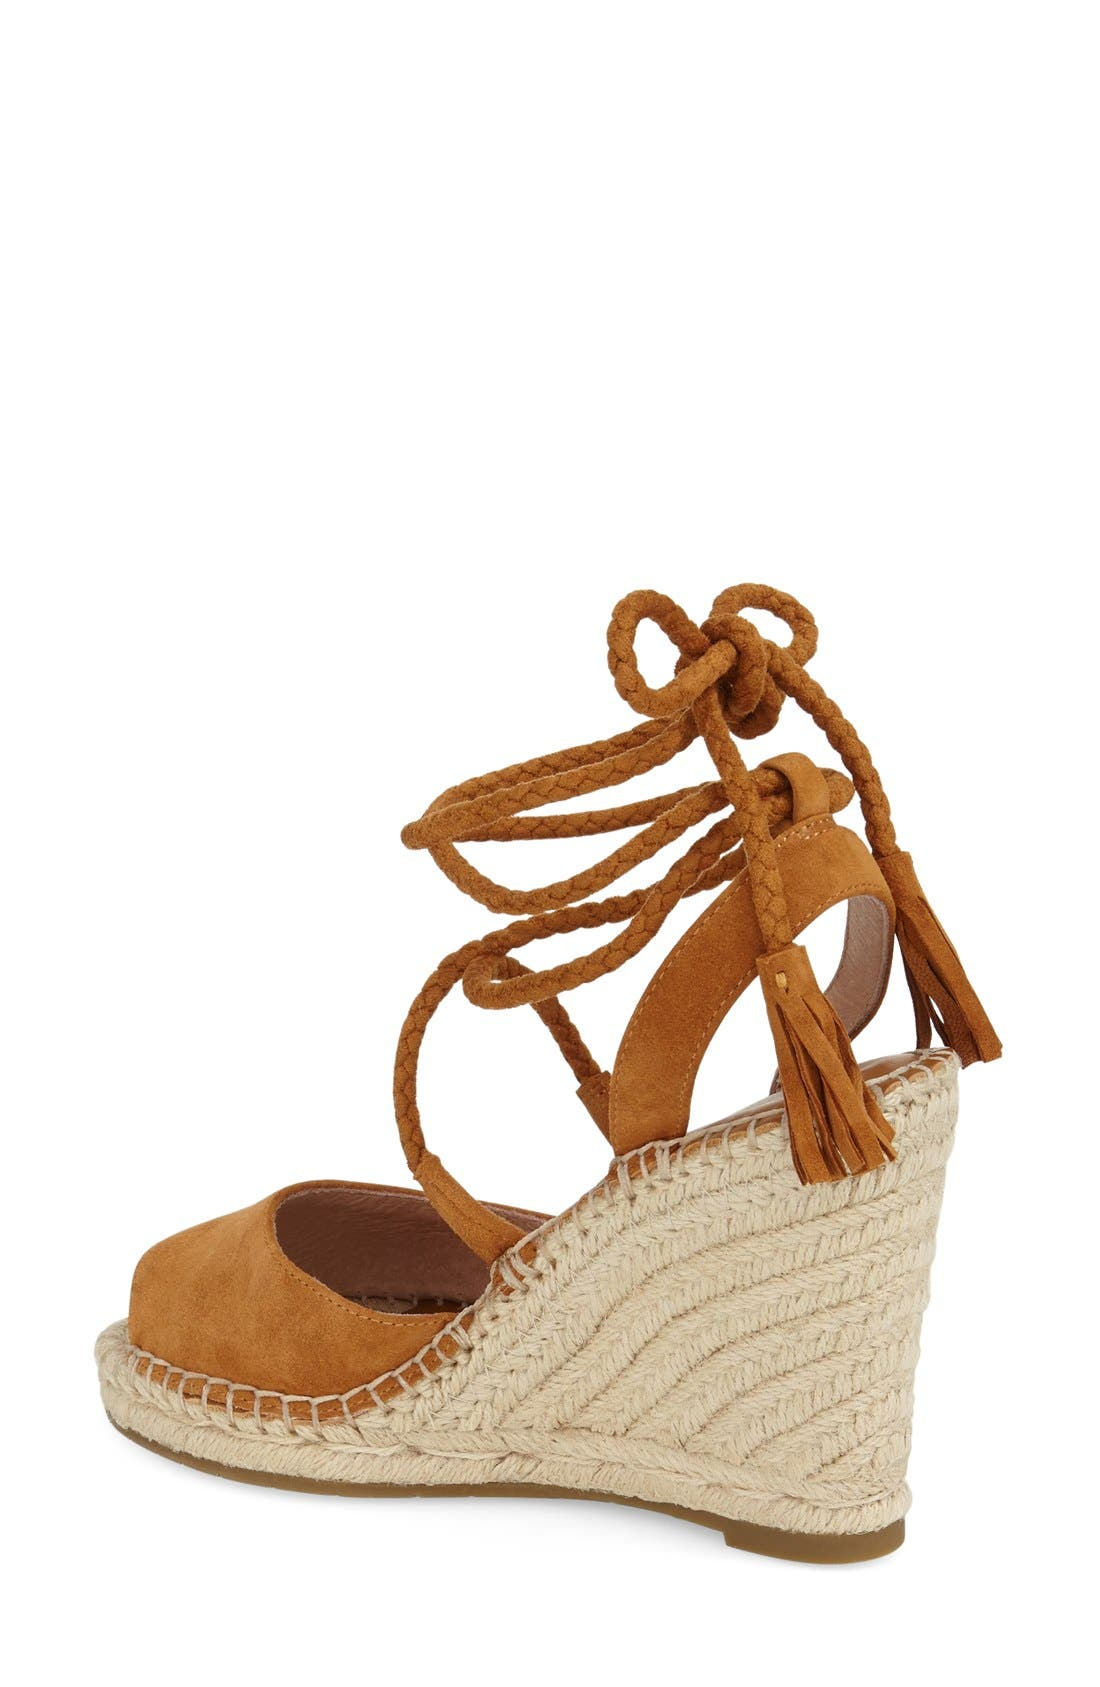 'Phyllis' Espadrille Wedge,                             Alternate thumbnail 3, color,                             219